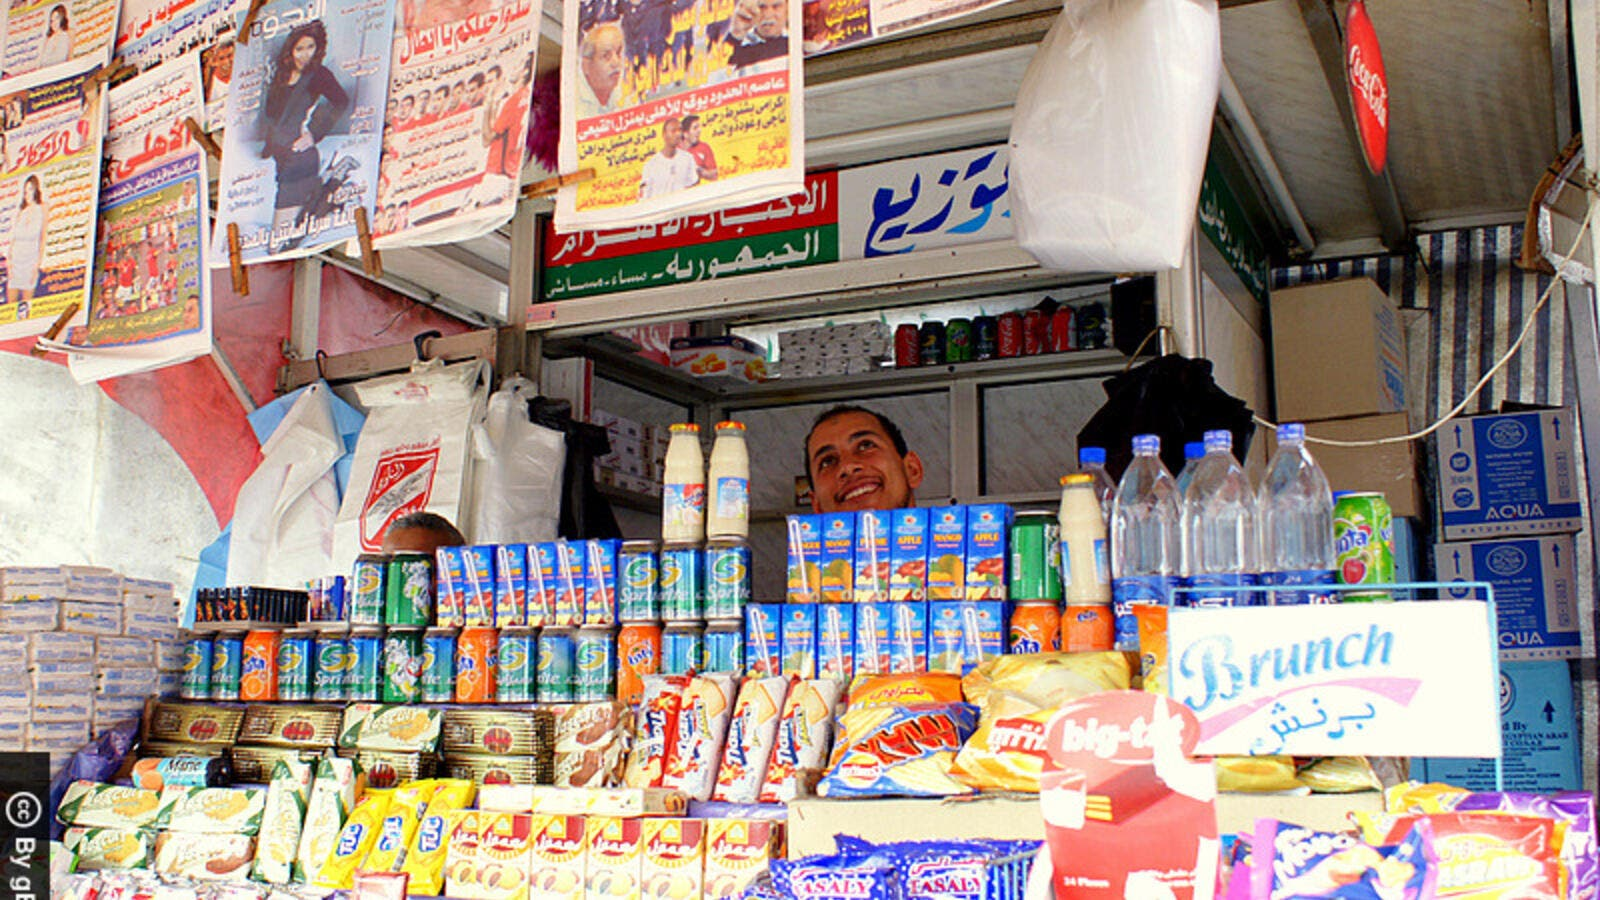 Once shunned in favour of prestigious foreign brands perceived to offer higher quality, Egyptian-made products are much more affordable for customers who are increasingly price-conscious. (Wikimedia Commons)